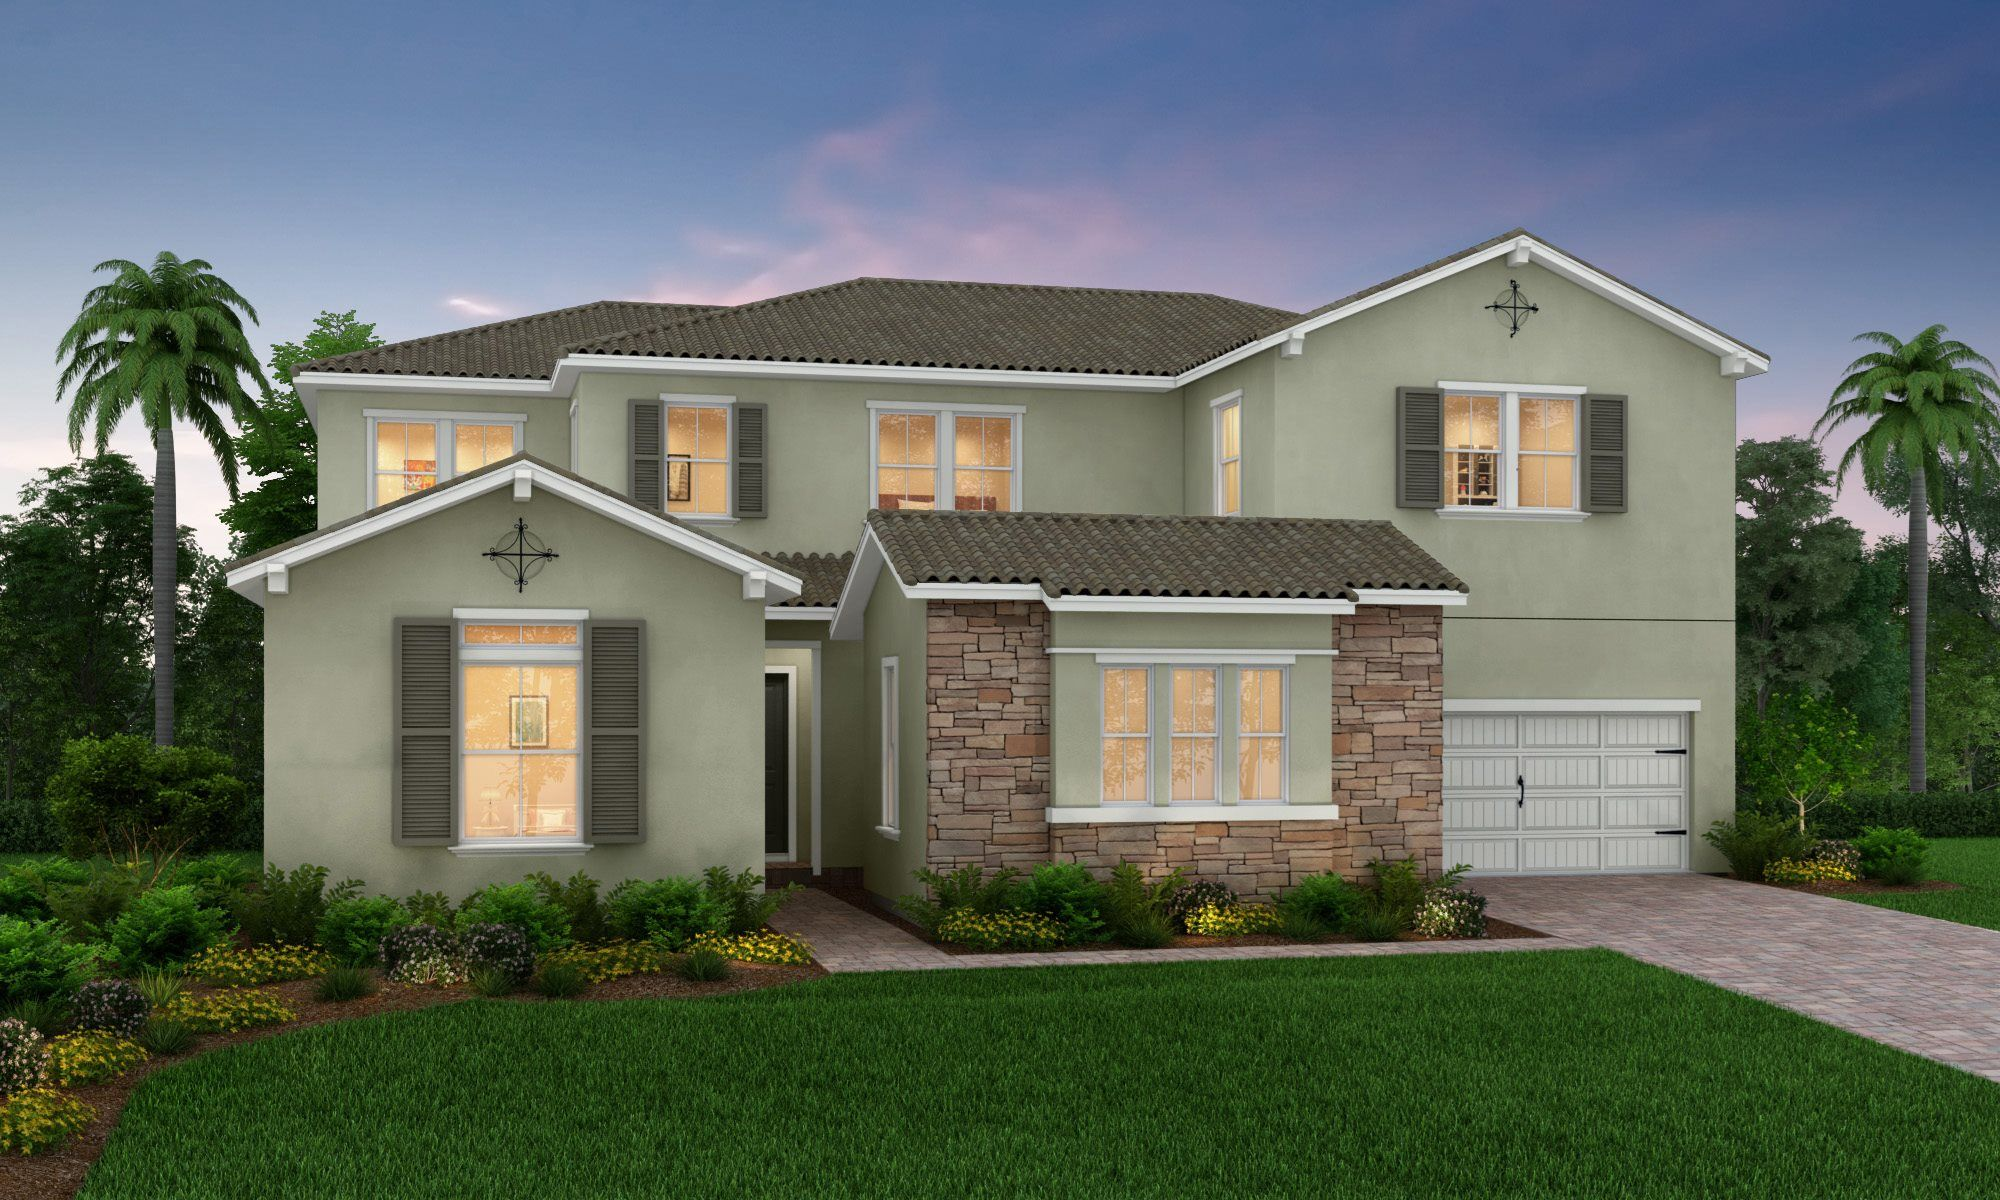 New Construction Homes & Plans in Saint Johns, FL | 3,015 ... on saratoga wayne homes, el paso tx floor plans, toll brothers floor plans, saratoga place floor plans, saratoga homes floor sign, united built home floor plans, saratoga el paso floor plans, saratoga homes el paso tx, remington ridge floor plans, saratoga homes custom homes,